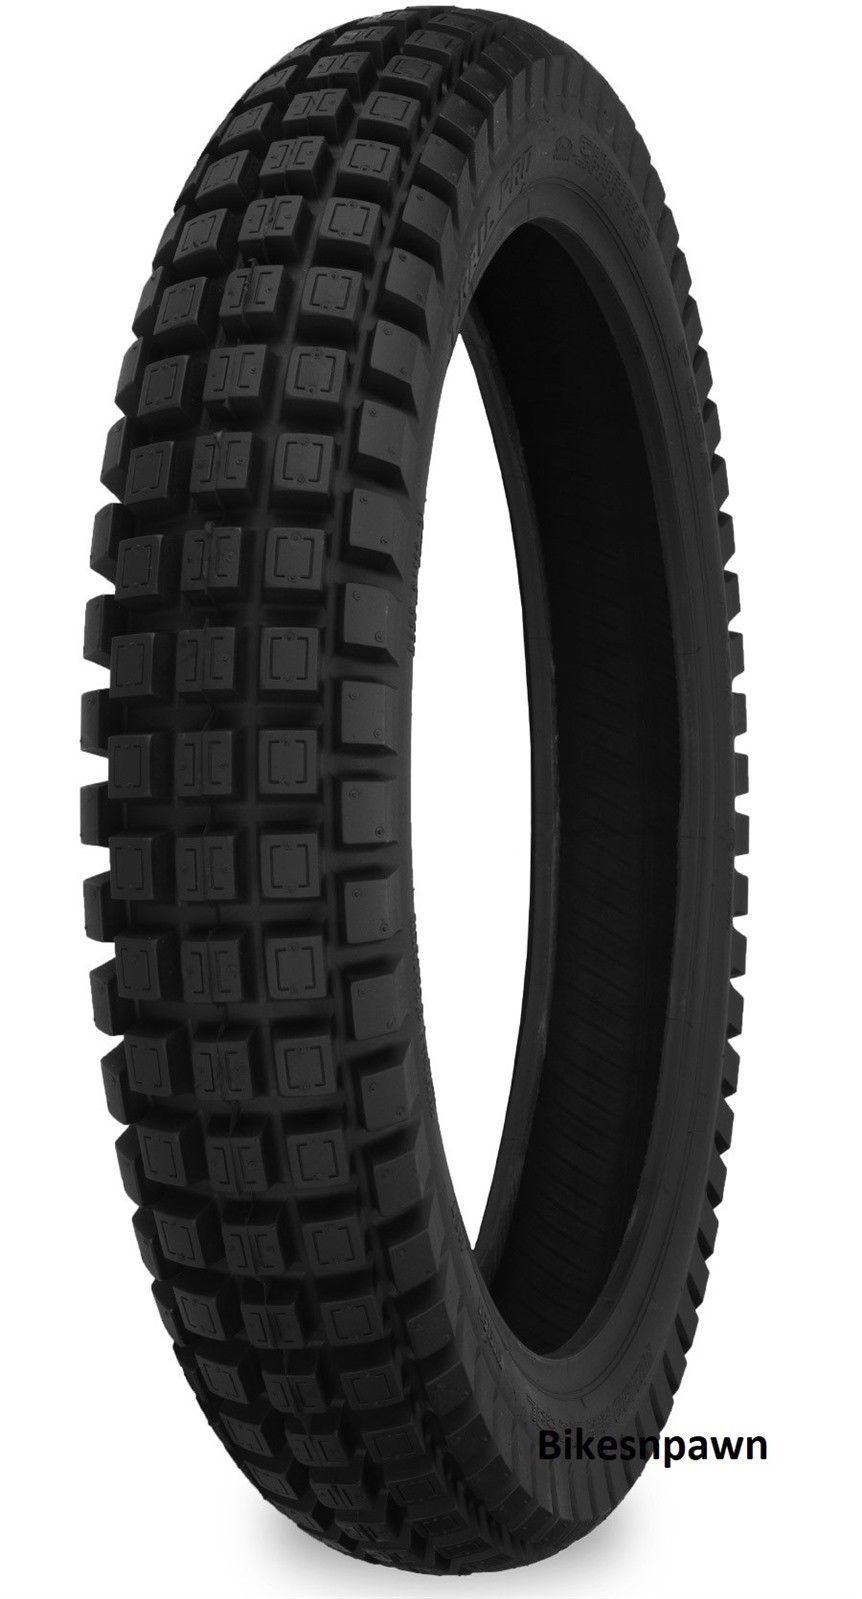 Shinko Trail Pro 255 120/90R-18 Rear Trials Soft Radial DOT Motorcycle Tire M65